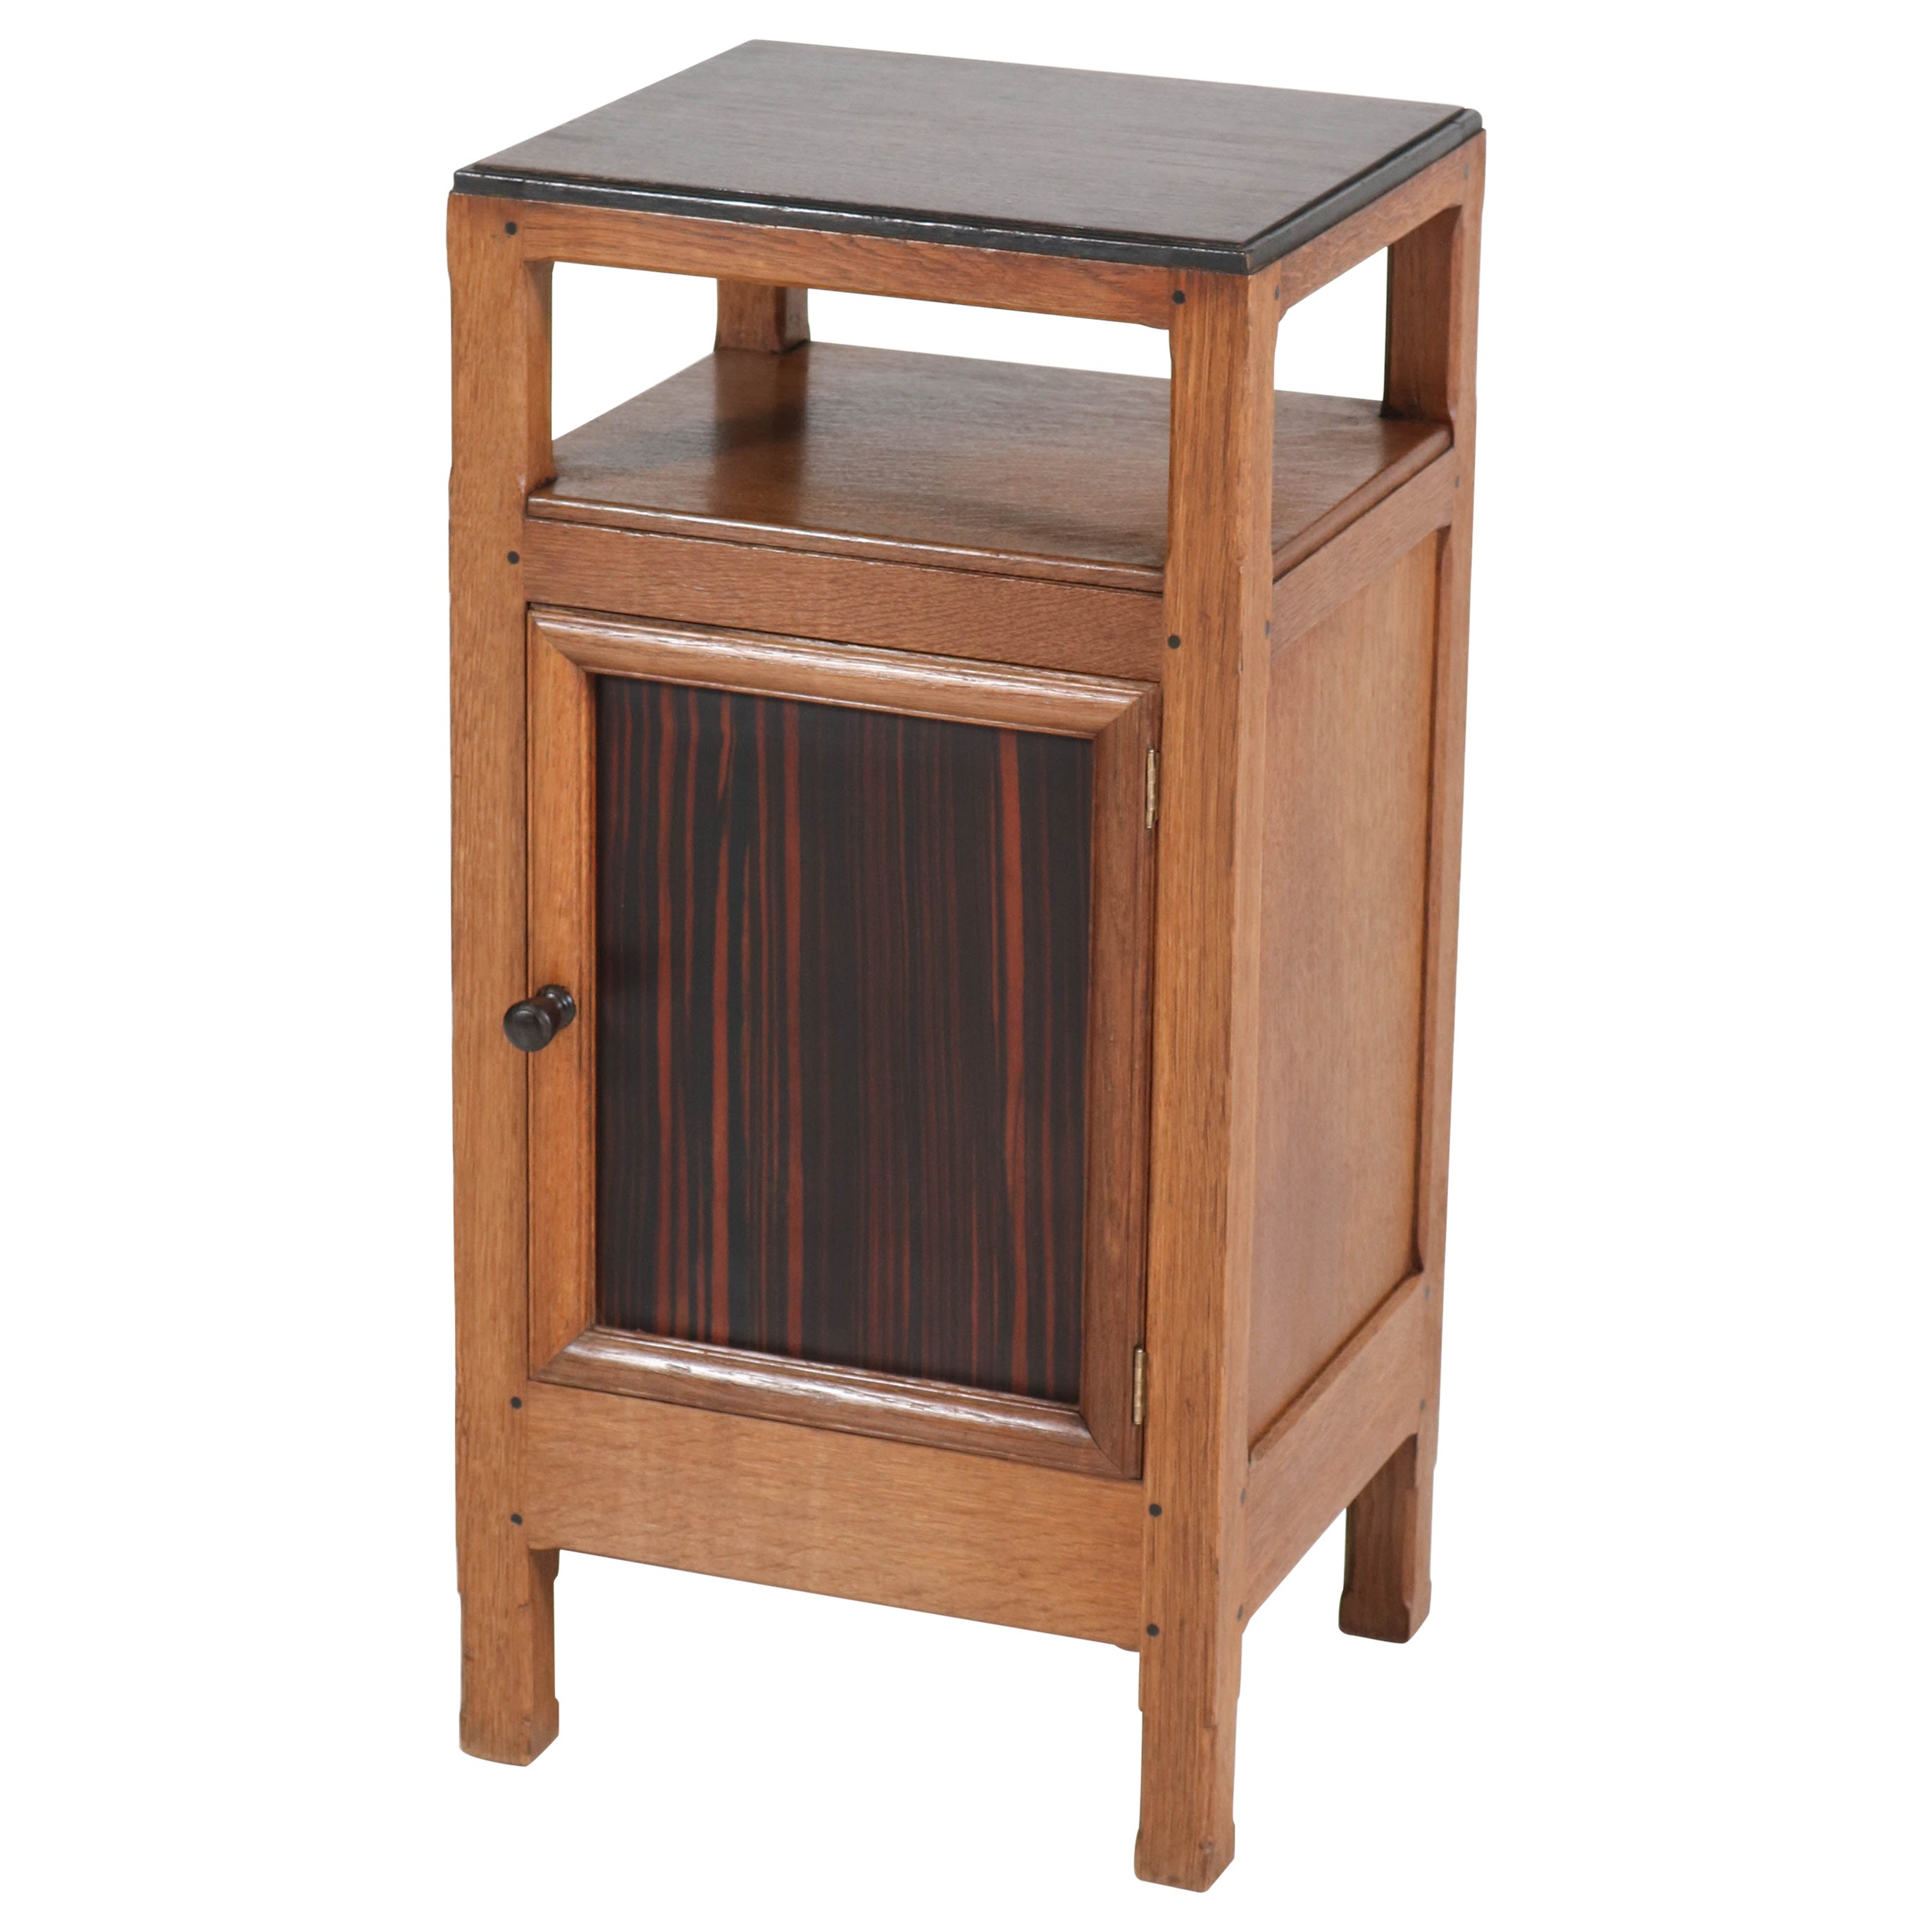 Oak Art Deco Haagse School Nightstand by Paul Bromberg for H. Pander & Zonen